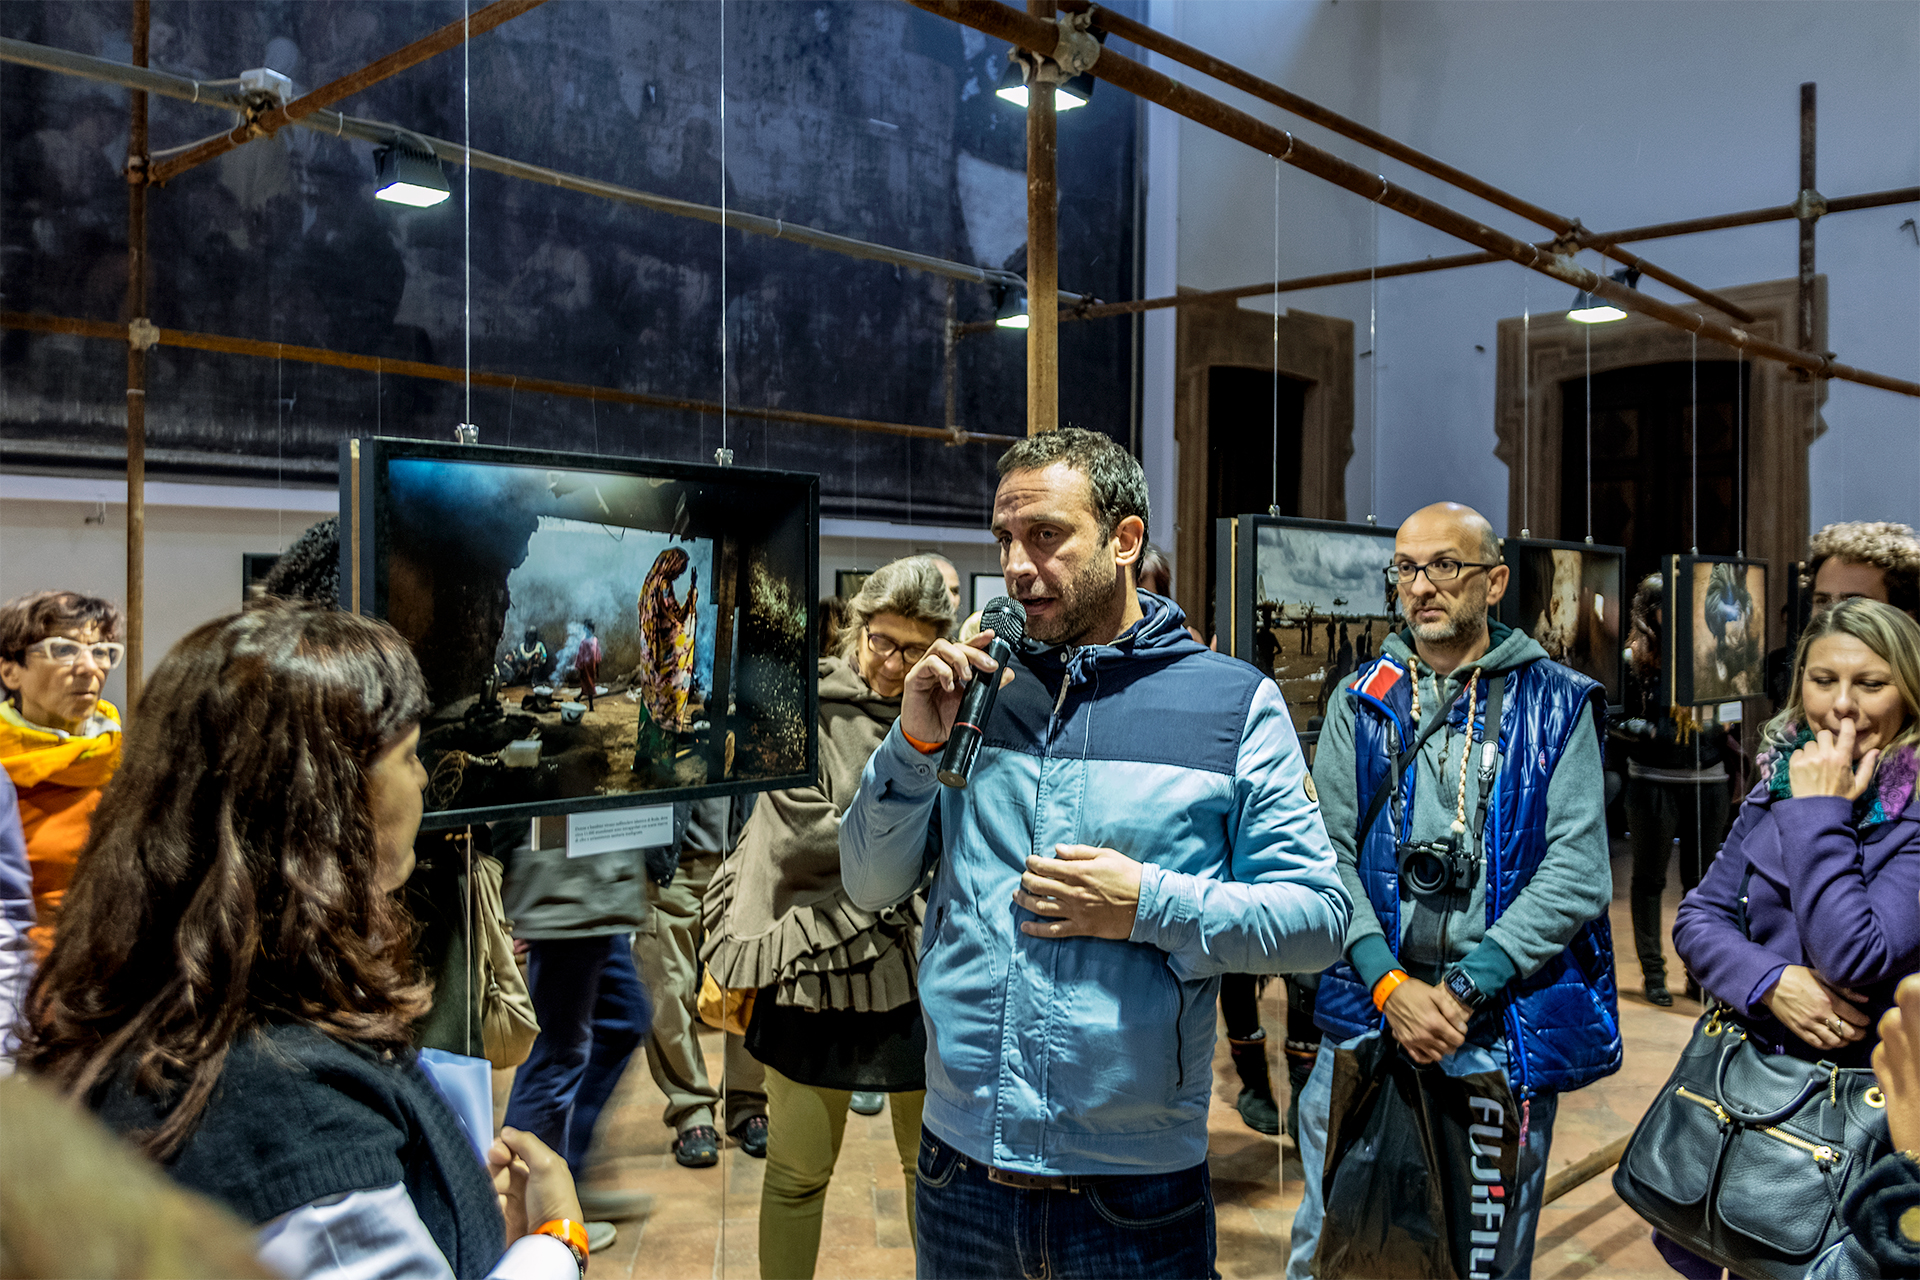 William Daniels during the guided tour of his exhibition C.A.R., set up at Palazzo Barni in Lodi. © FPmag.